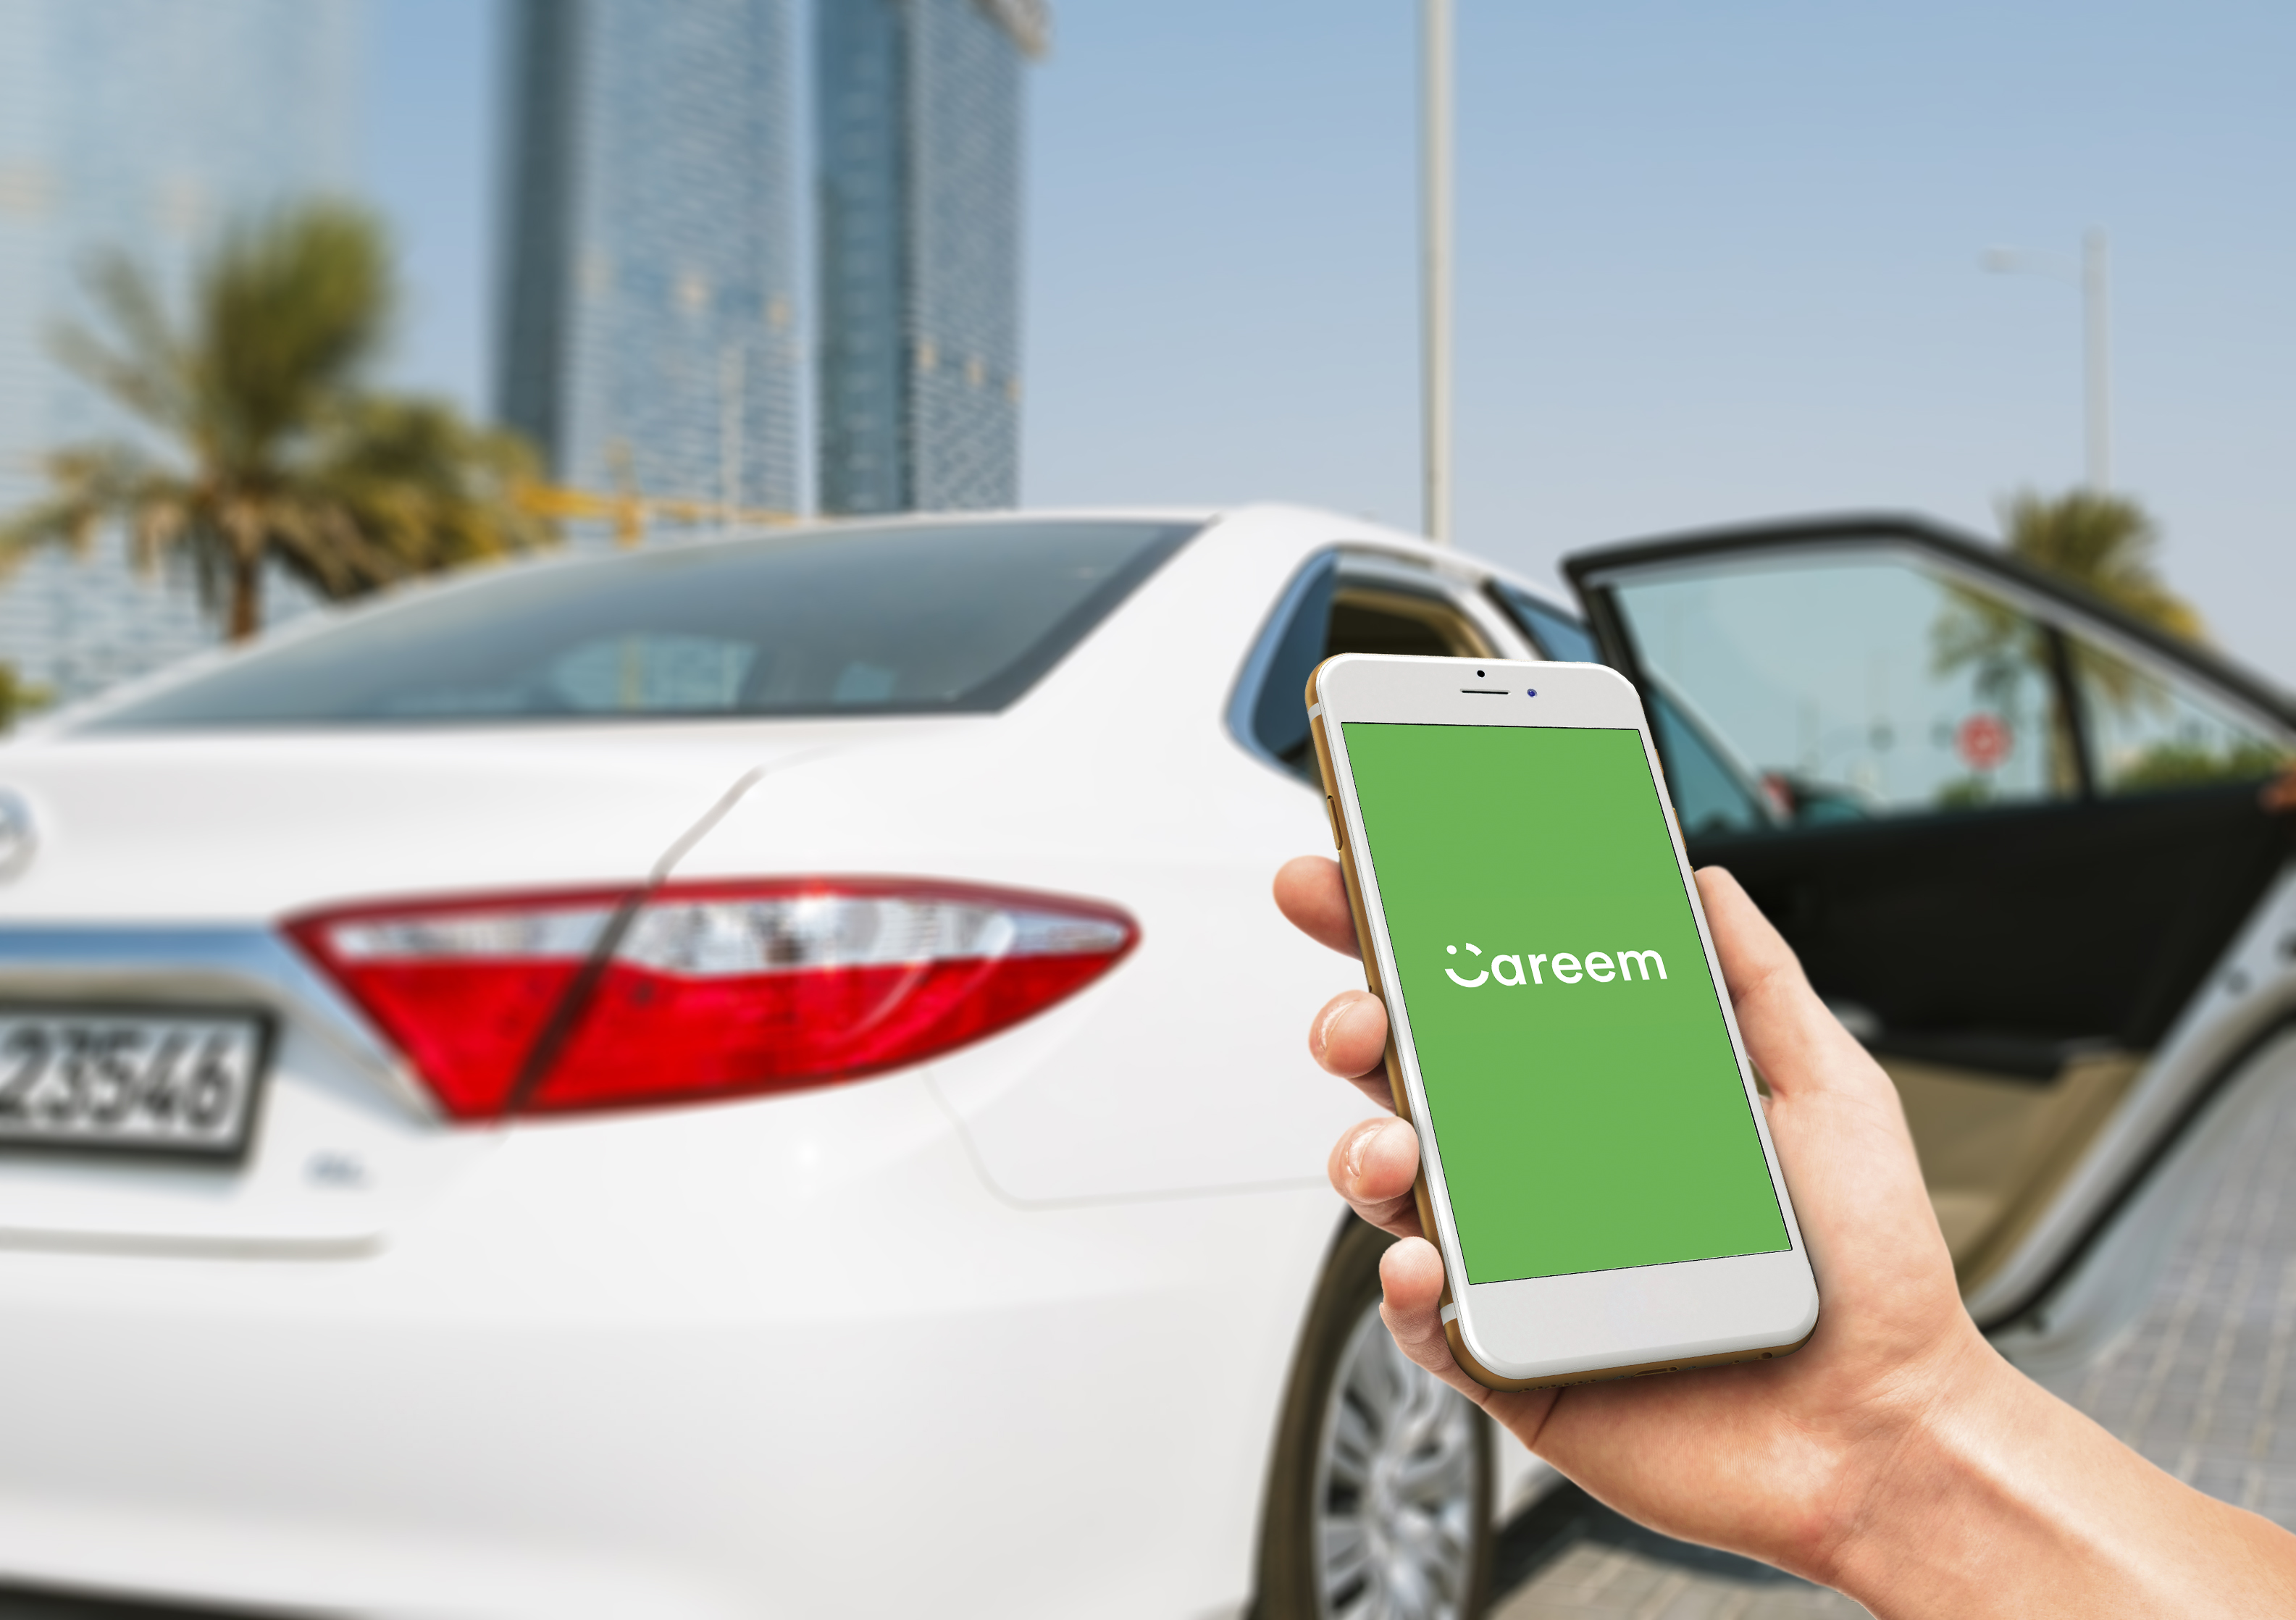 Dubai: Uber rival Careem comes under cyber attack